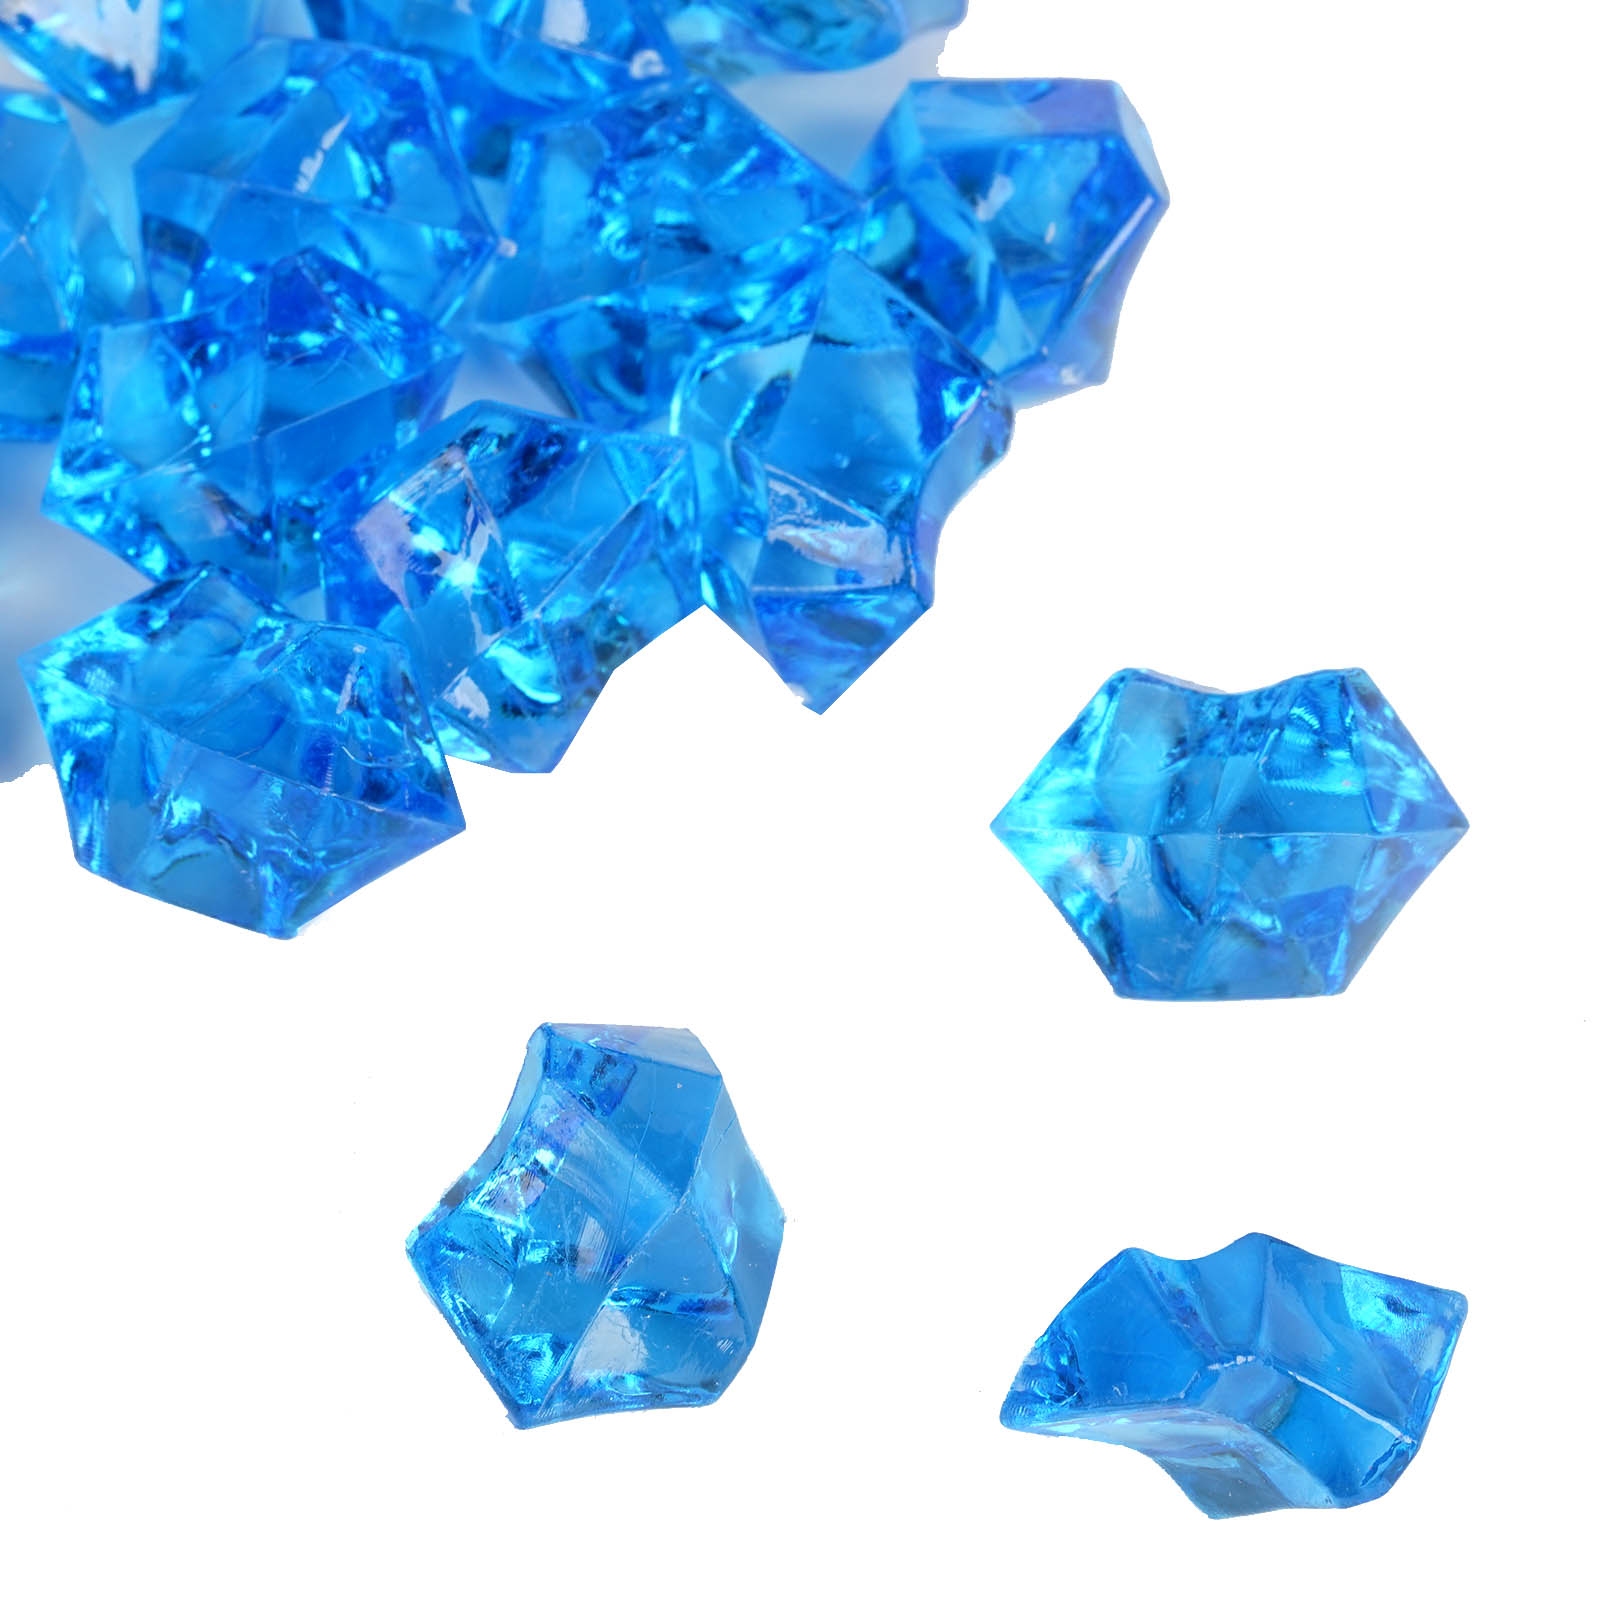 300-Acrylic-Ice-CRYSTAL-LIKE-Pieces-Wedding-Centerpieces-Decorations-Supplies thumbnail 57